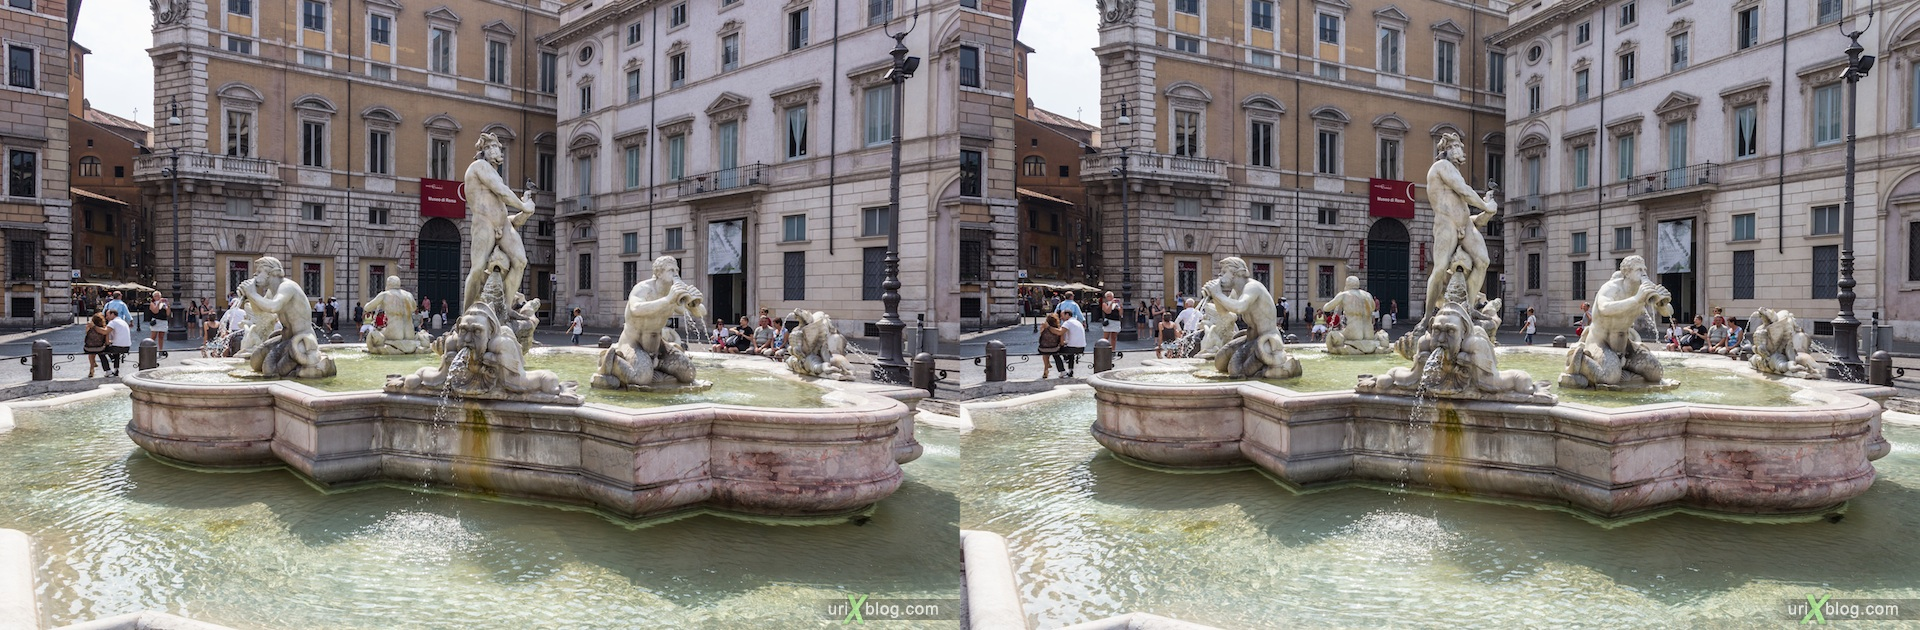 2012, the Moor fountain, Piazza Navona, Rome, Italy, 3D, stereo pair, cross-eyed, crossview, cross view stereo pair